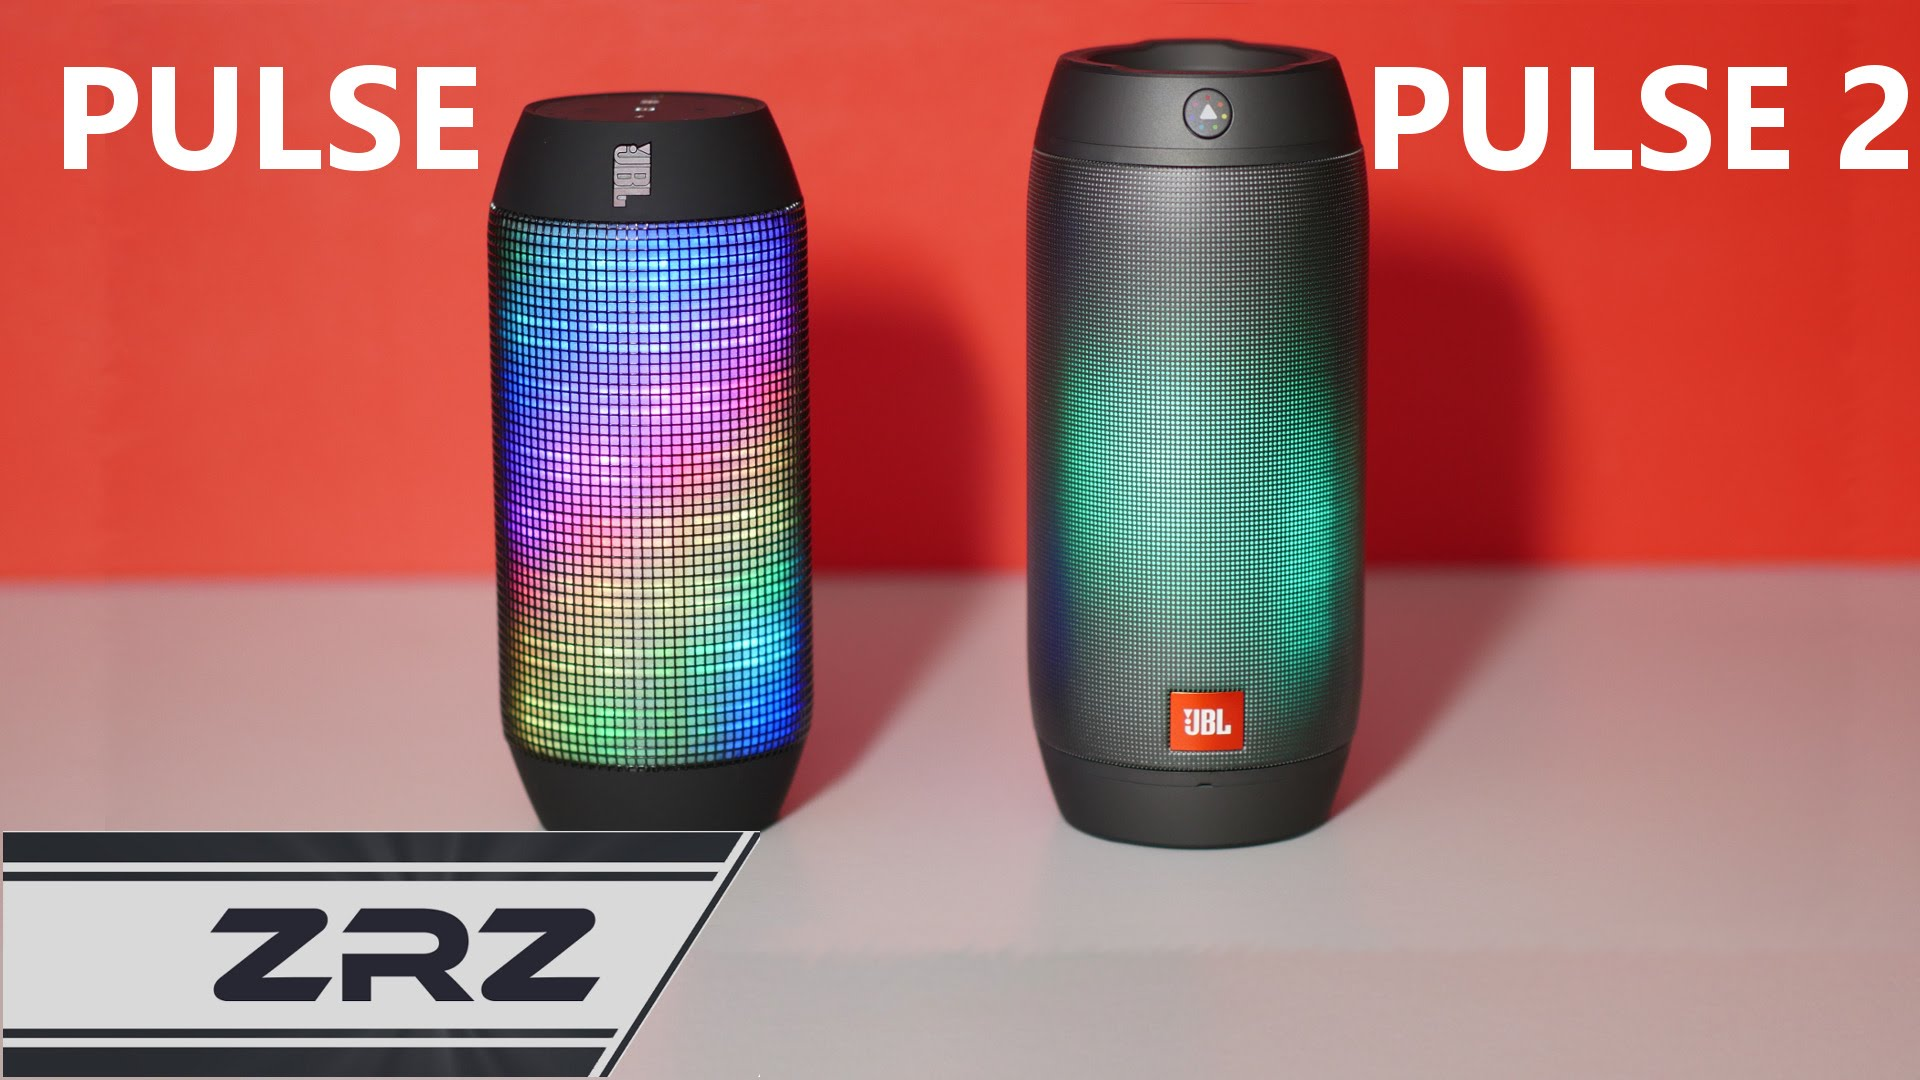 JBL Pulse vs Pulse 2, Features Added and Cut - PlayStation, XBox